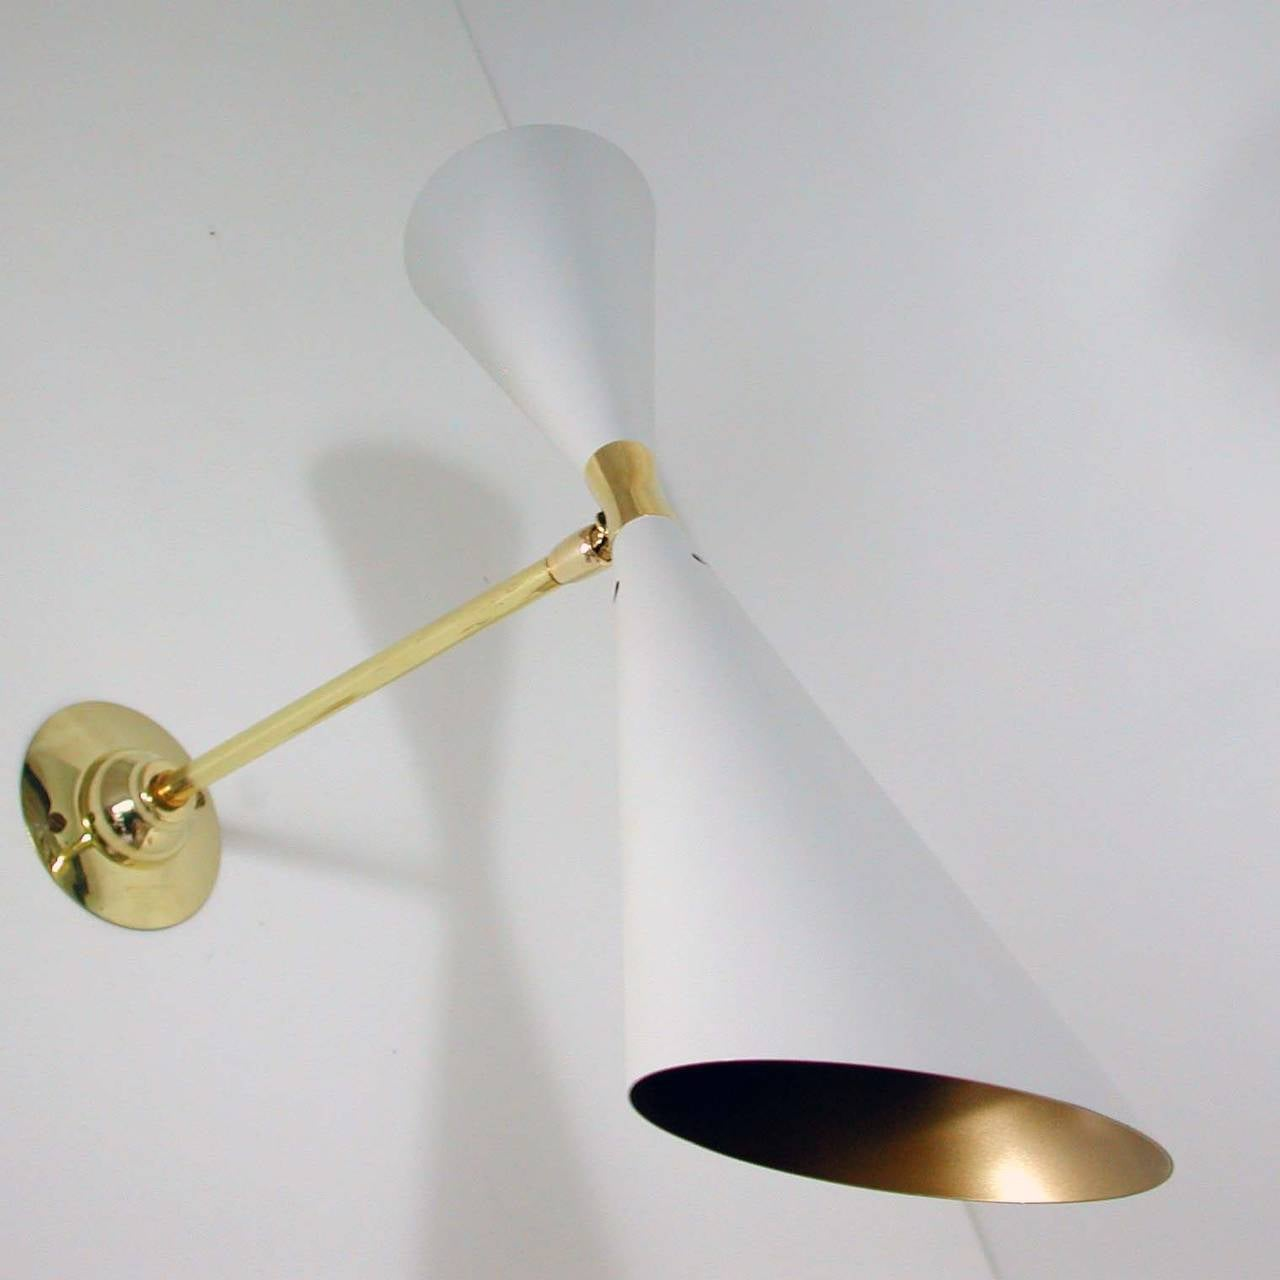 Mid-Century French 1950s Diabolo Wall Light Sconce from the Guariche Lunel Era For Sale 2